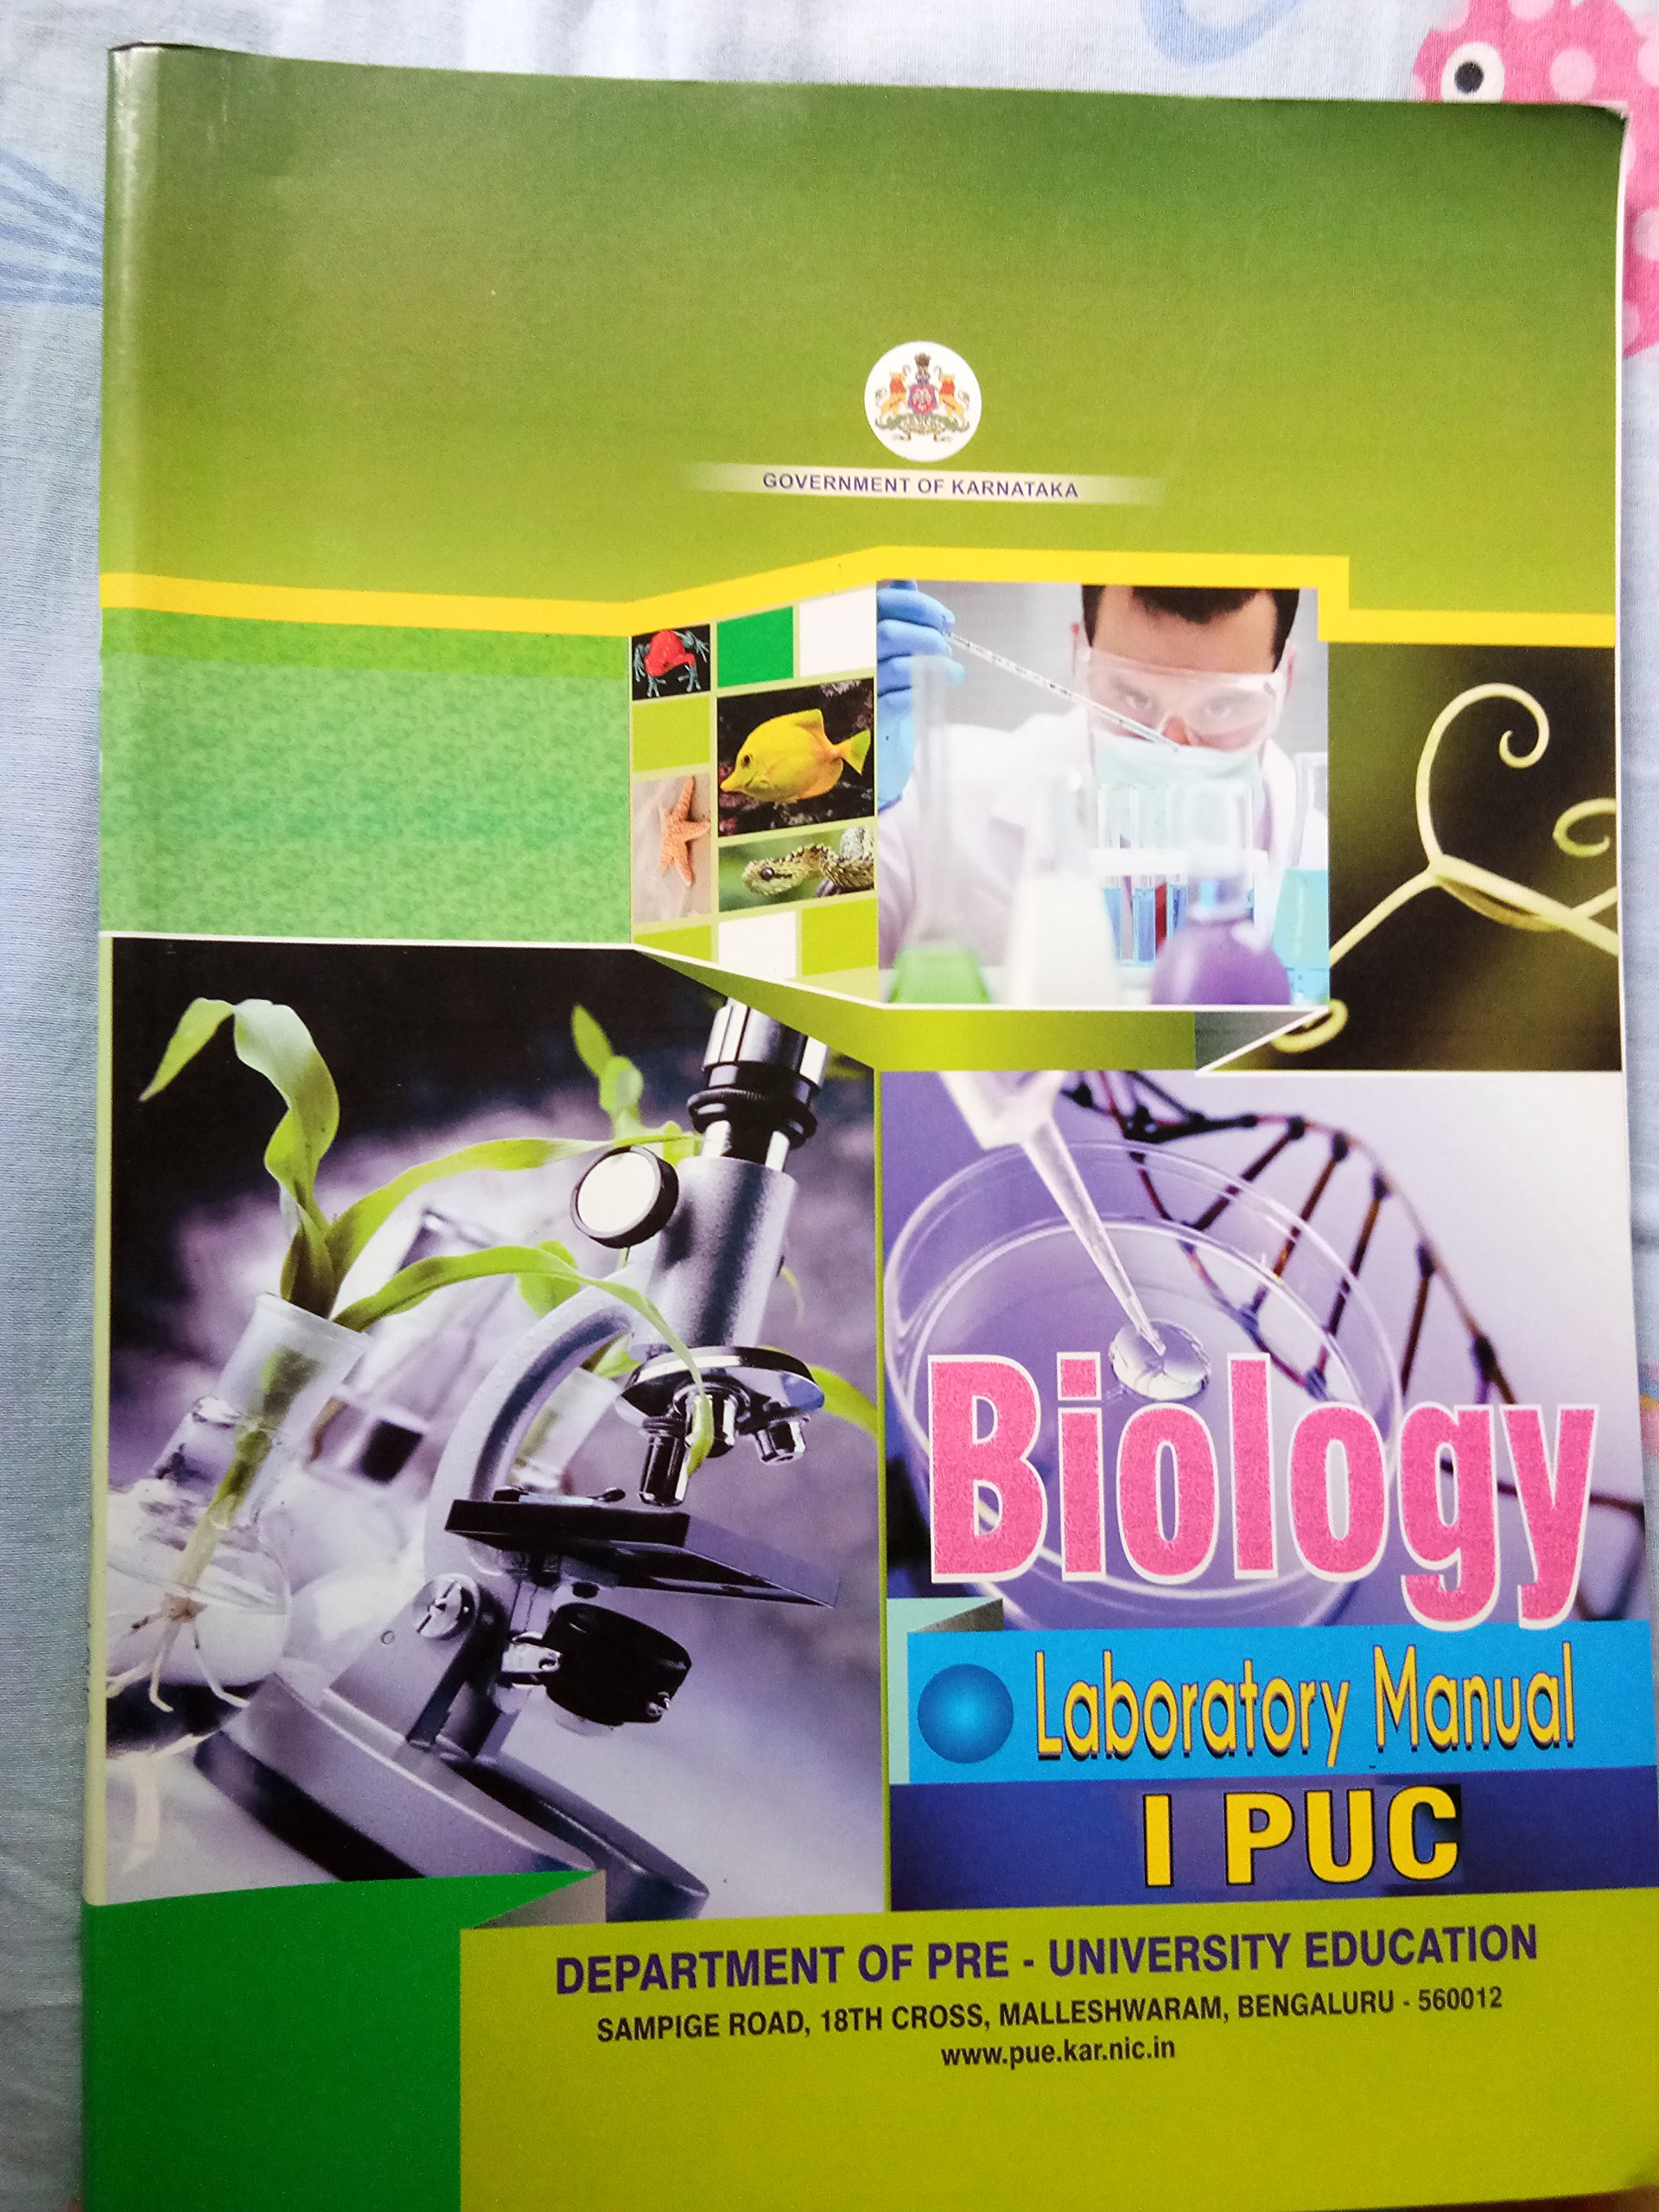 Amazon.in: Buy Physics, chemistry, biology laboratory manual for 1st puc,  ncert, karnataka Book Online at Low Prices in India | Physics, chemistry,  ...